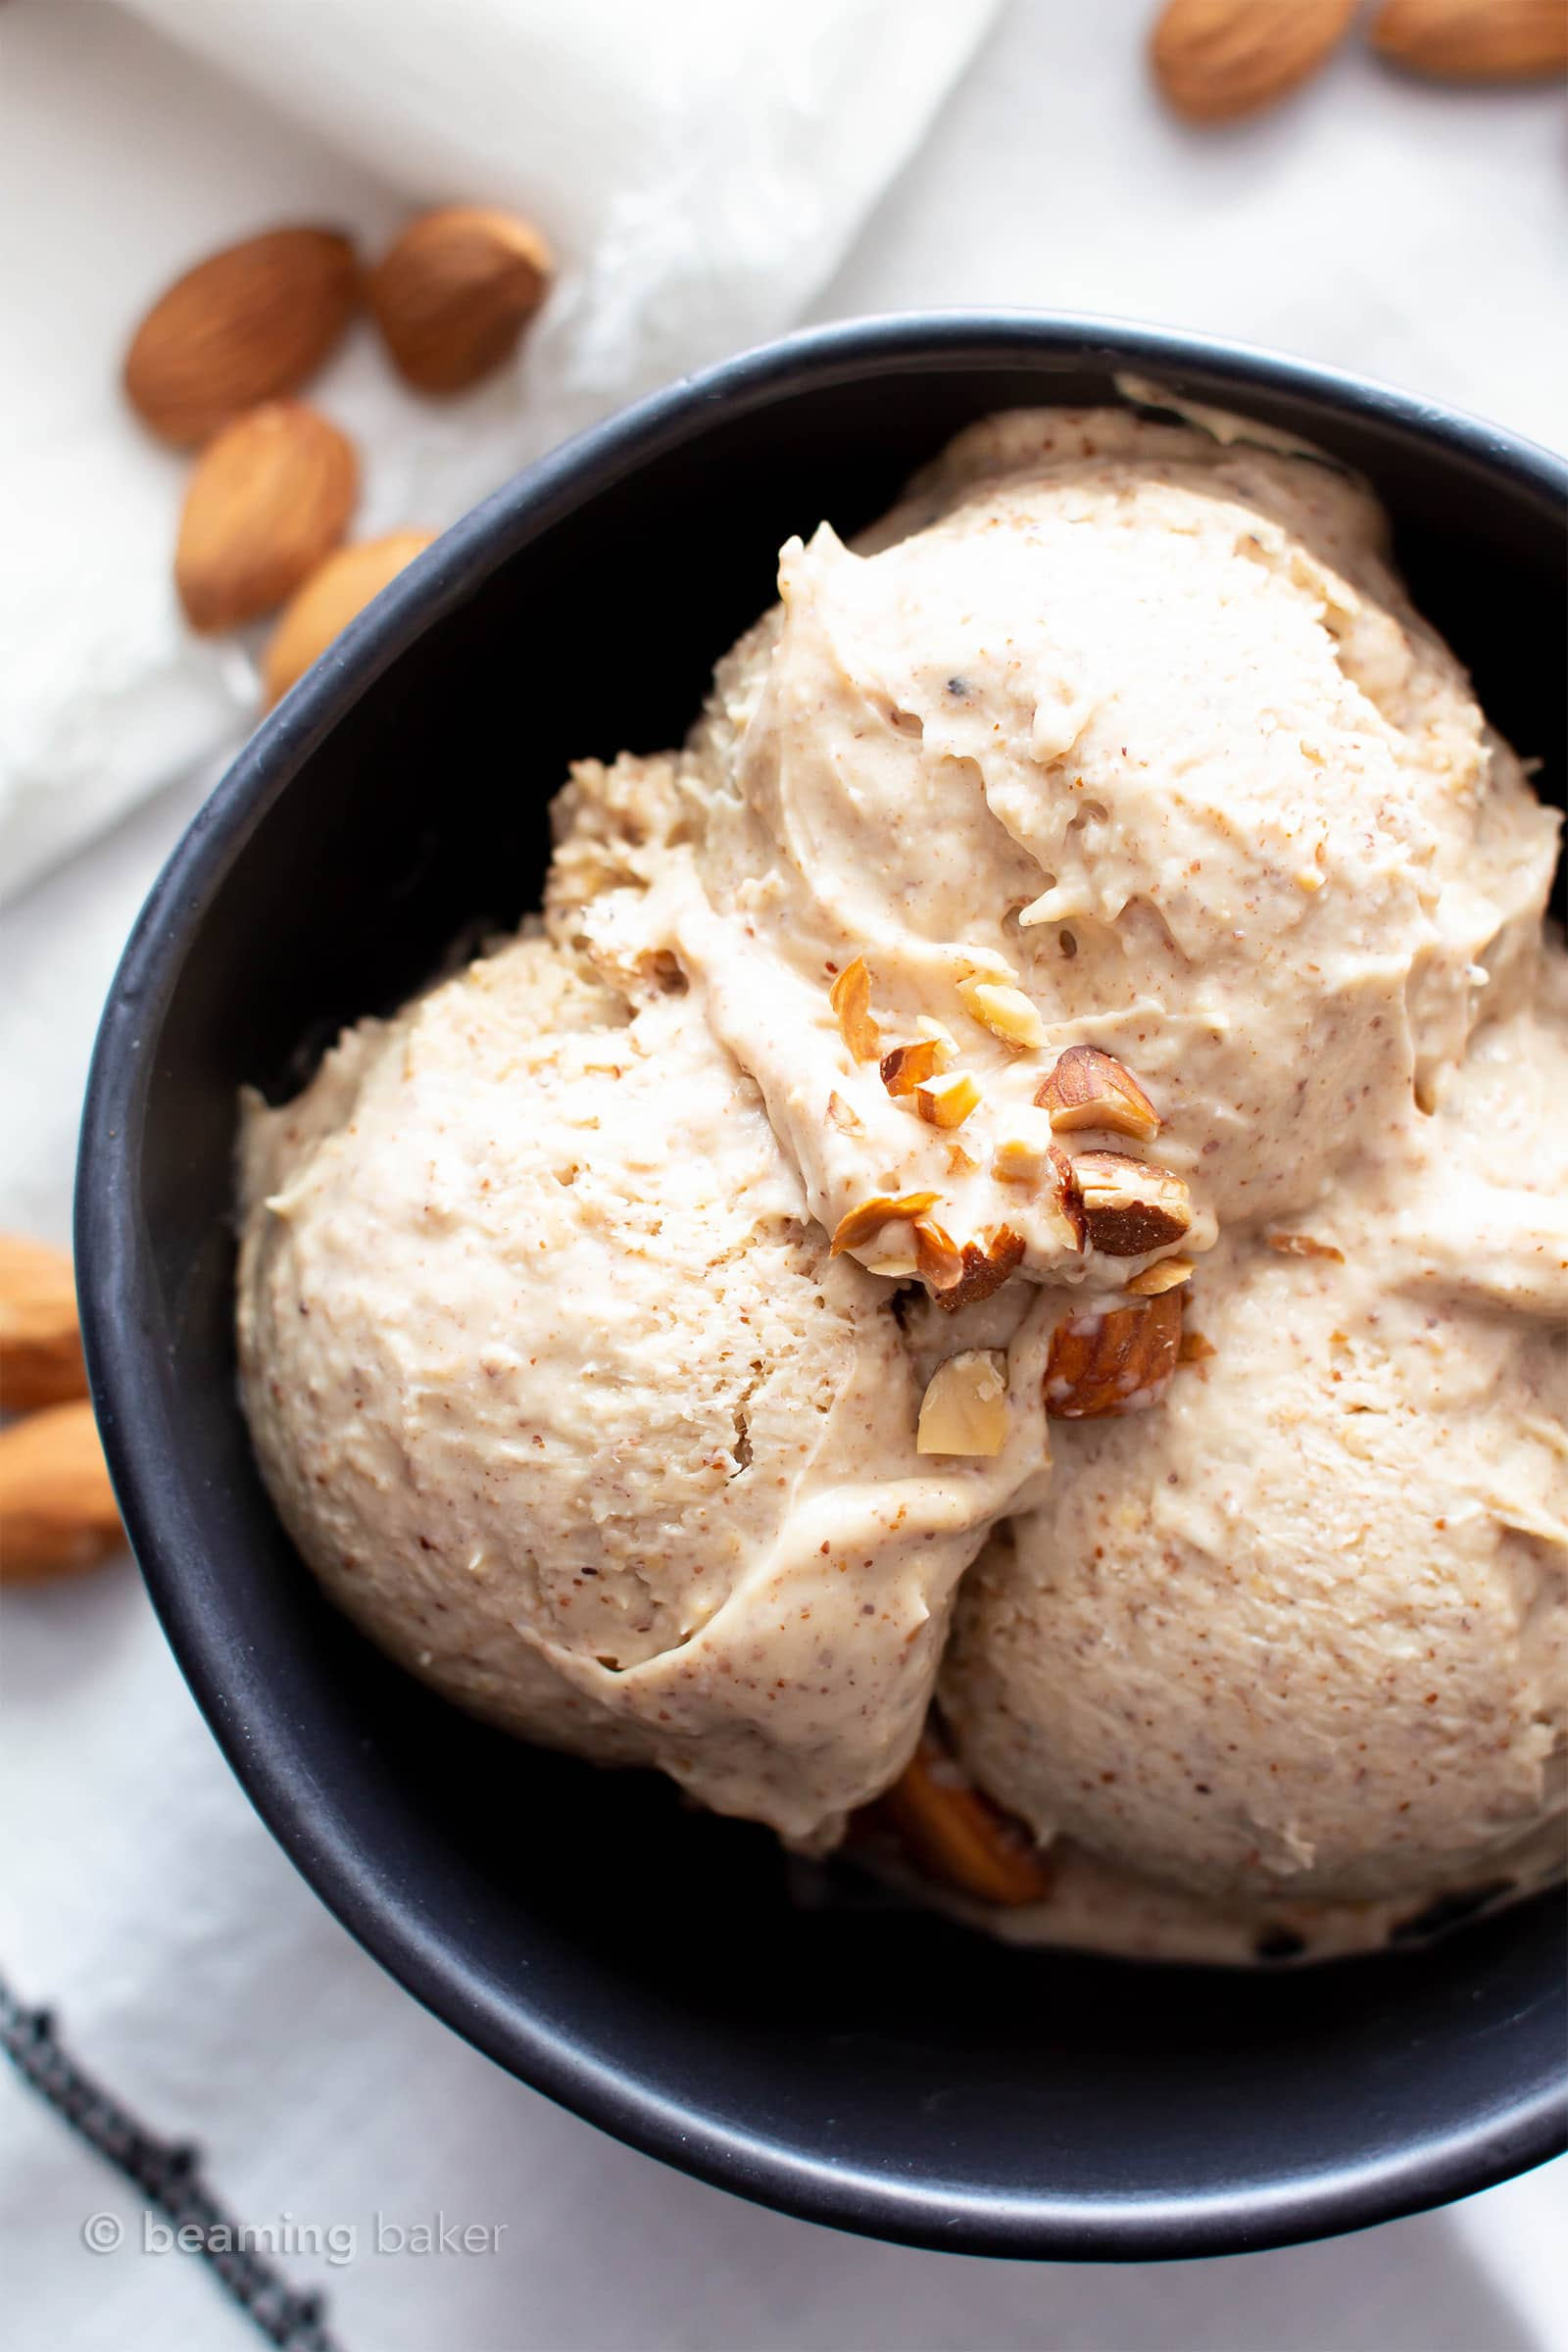 4 Ingredient Paleo Almond Butter Ice Cream Vegan Keto Dairy Free Without An Ice Cream Maker Beaming Baker